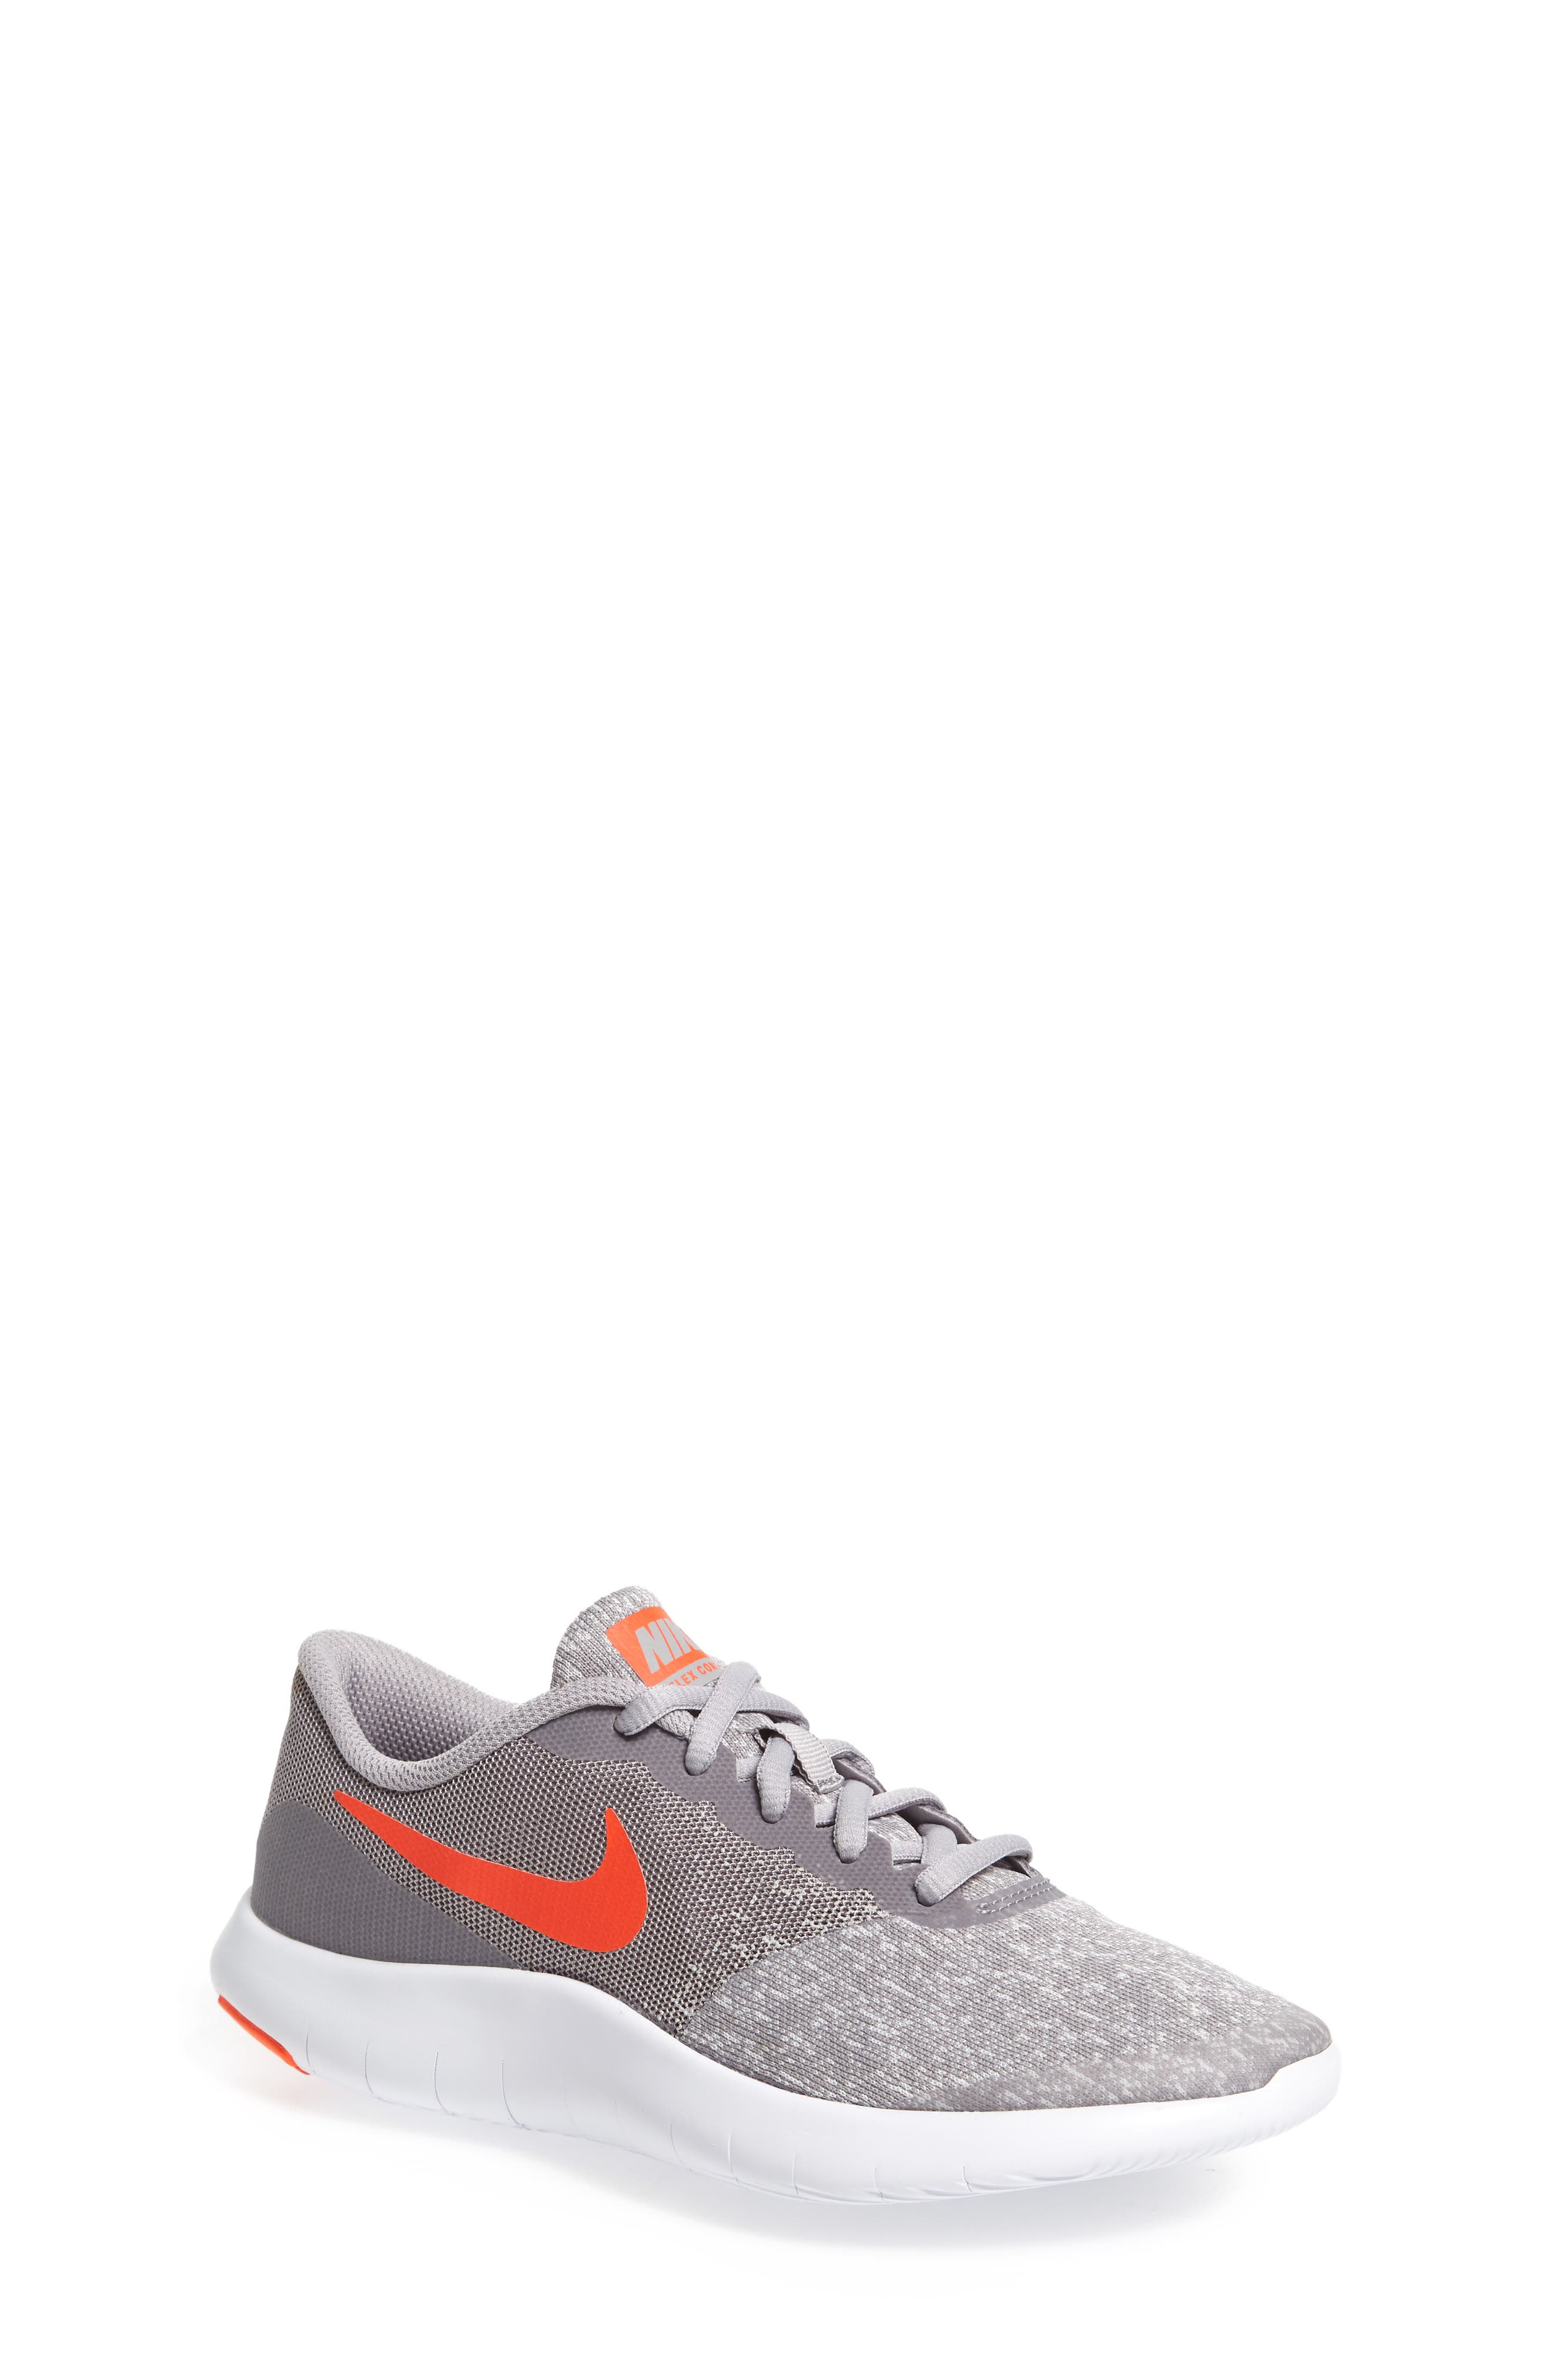 Flex Contact Running Shoe,                             Main thumbnail 1, color,                             Atmosphere Grey/ Total Crimson